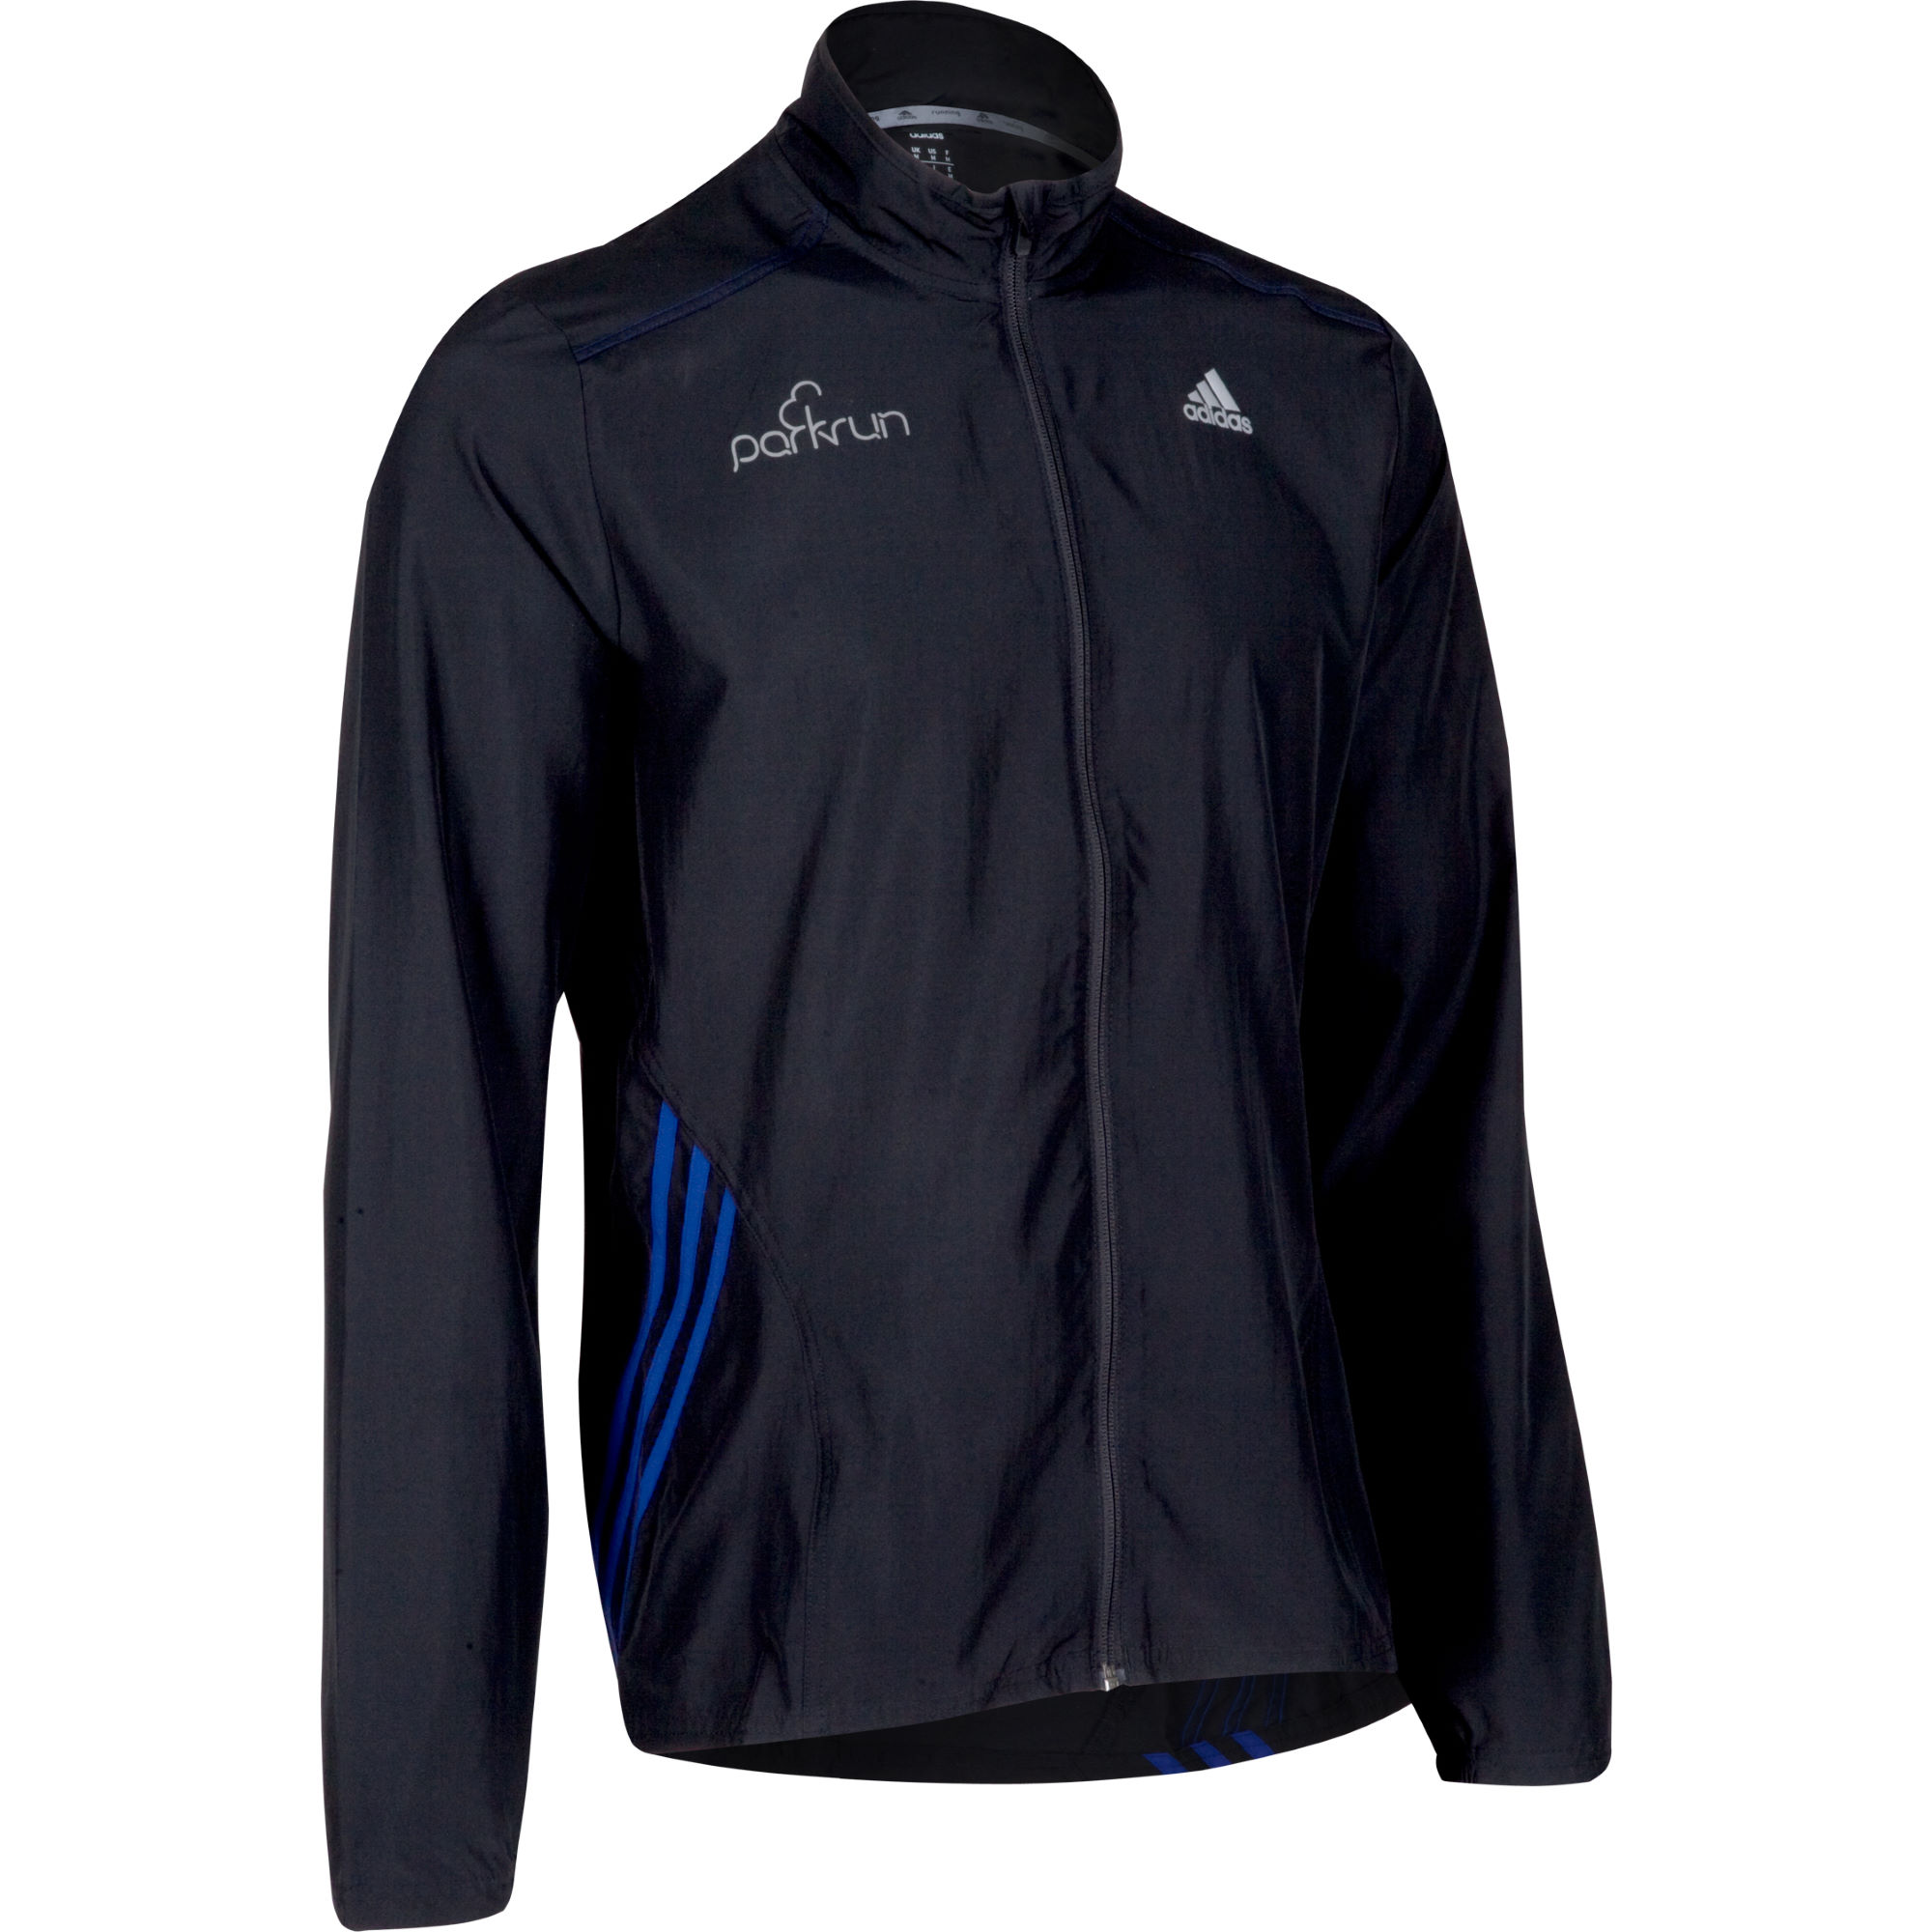 adidas originals running windproof jacket. Black Bedroom Furniture Sets. Home Design Ideas